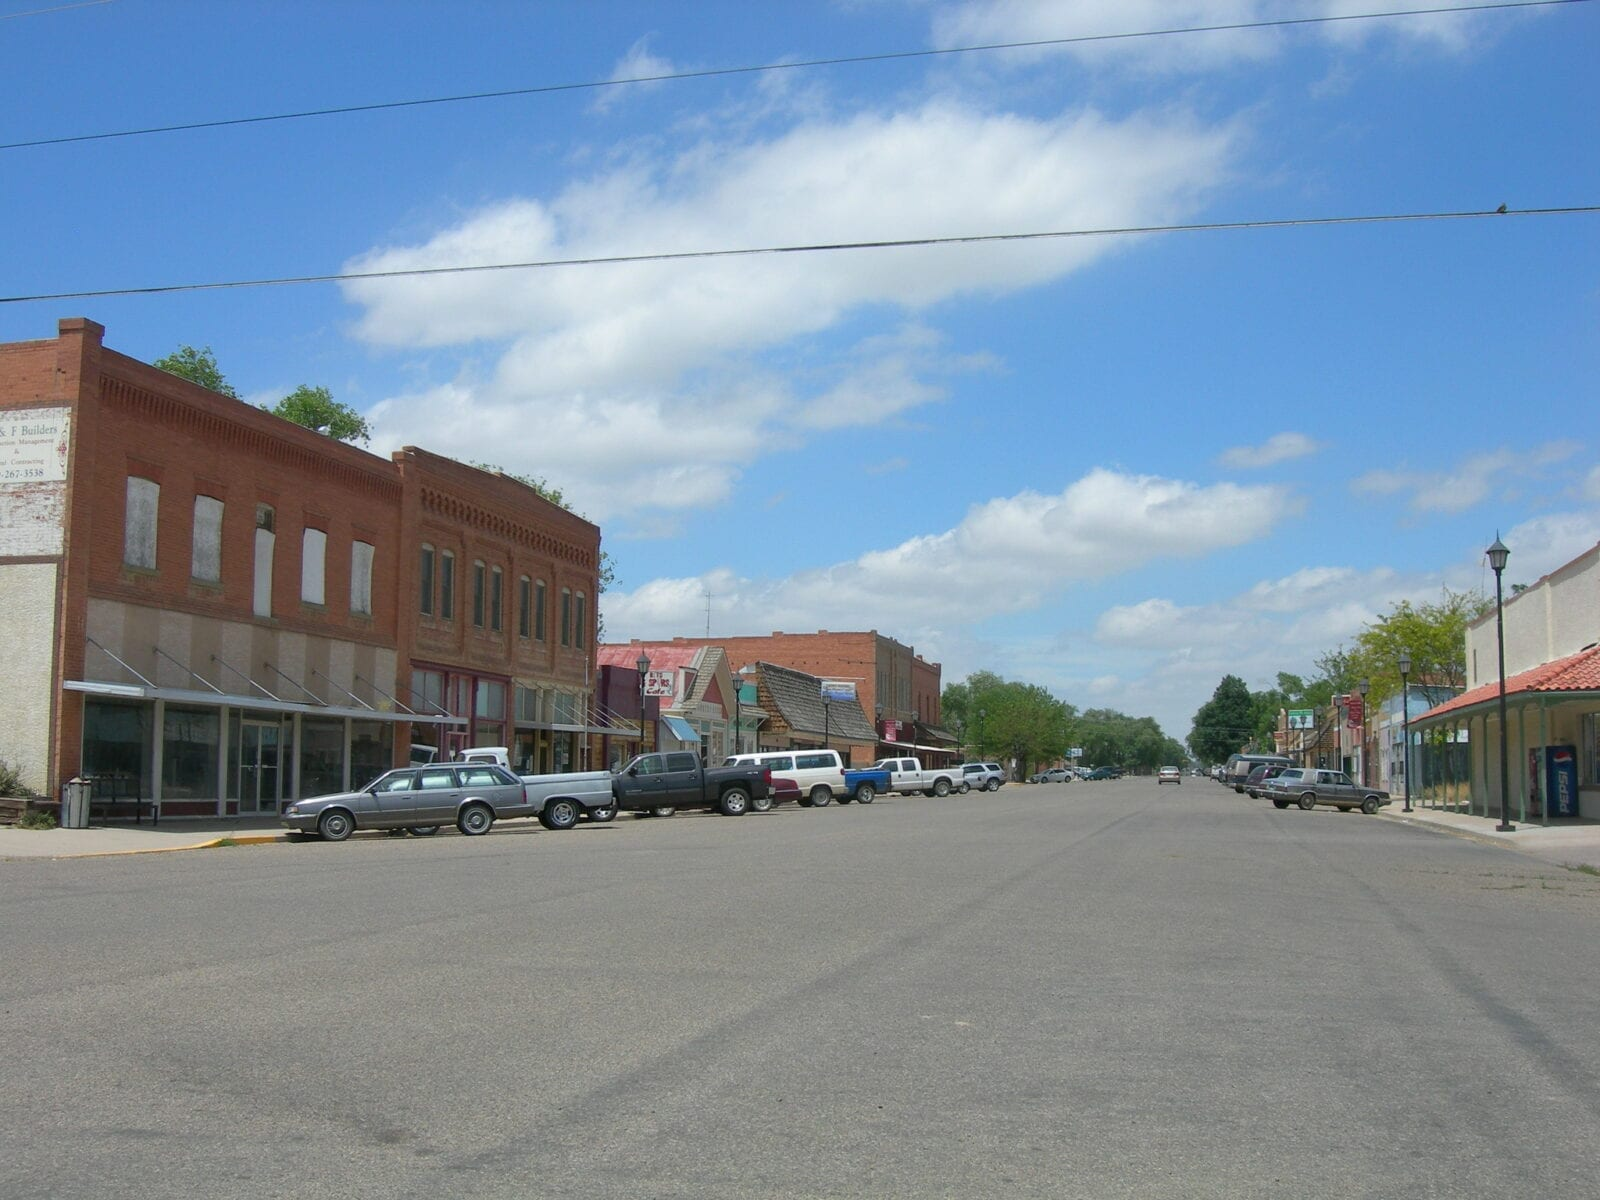 image of downtown Ordway